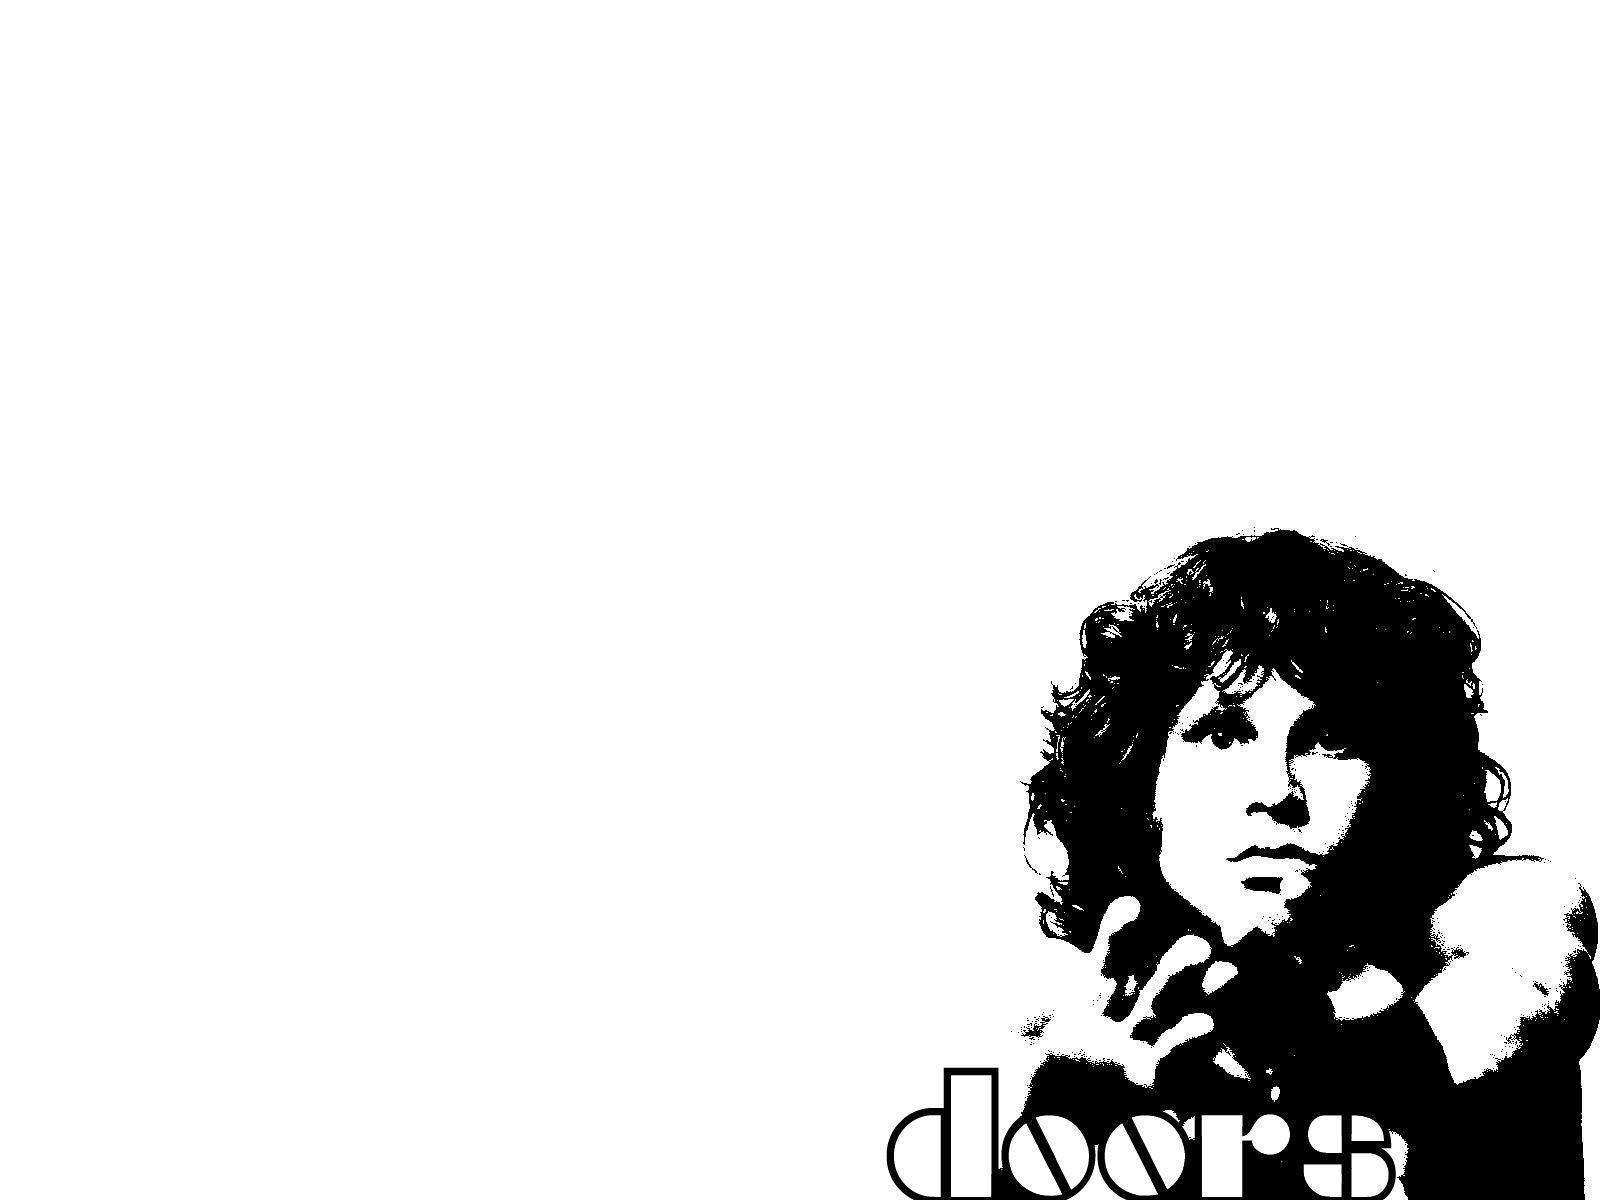 Jim Morrison Wallpapers Image & Pictures